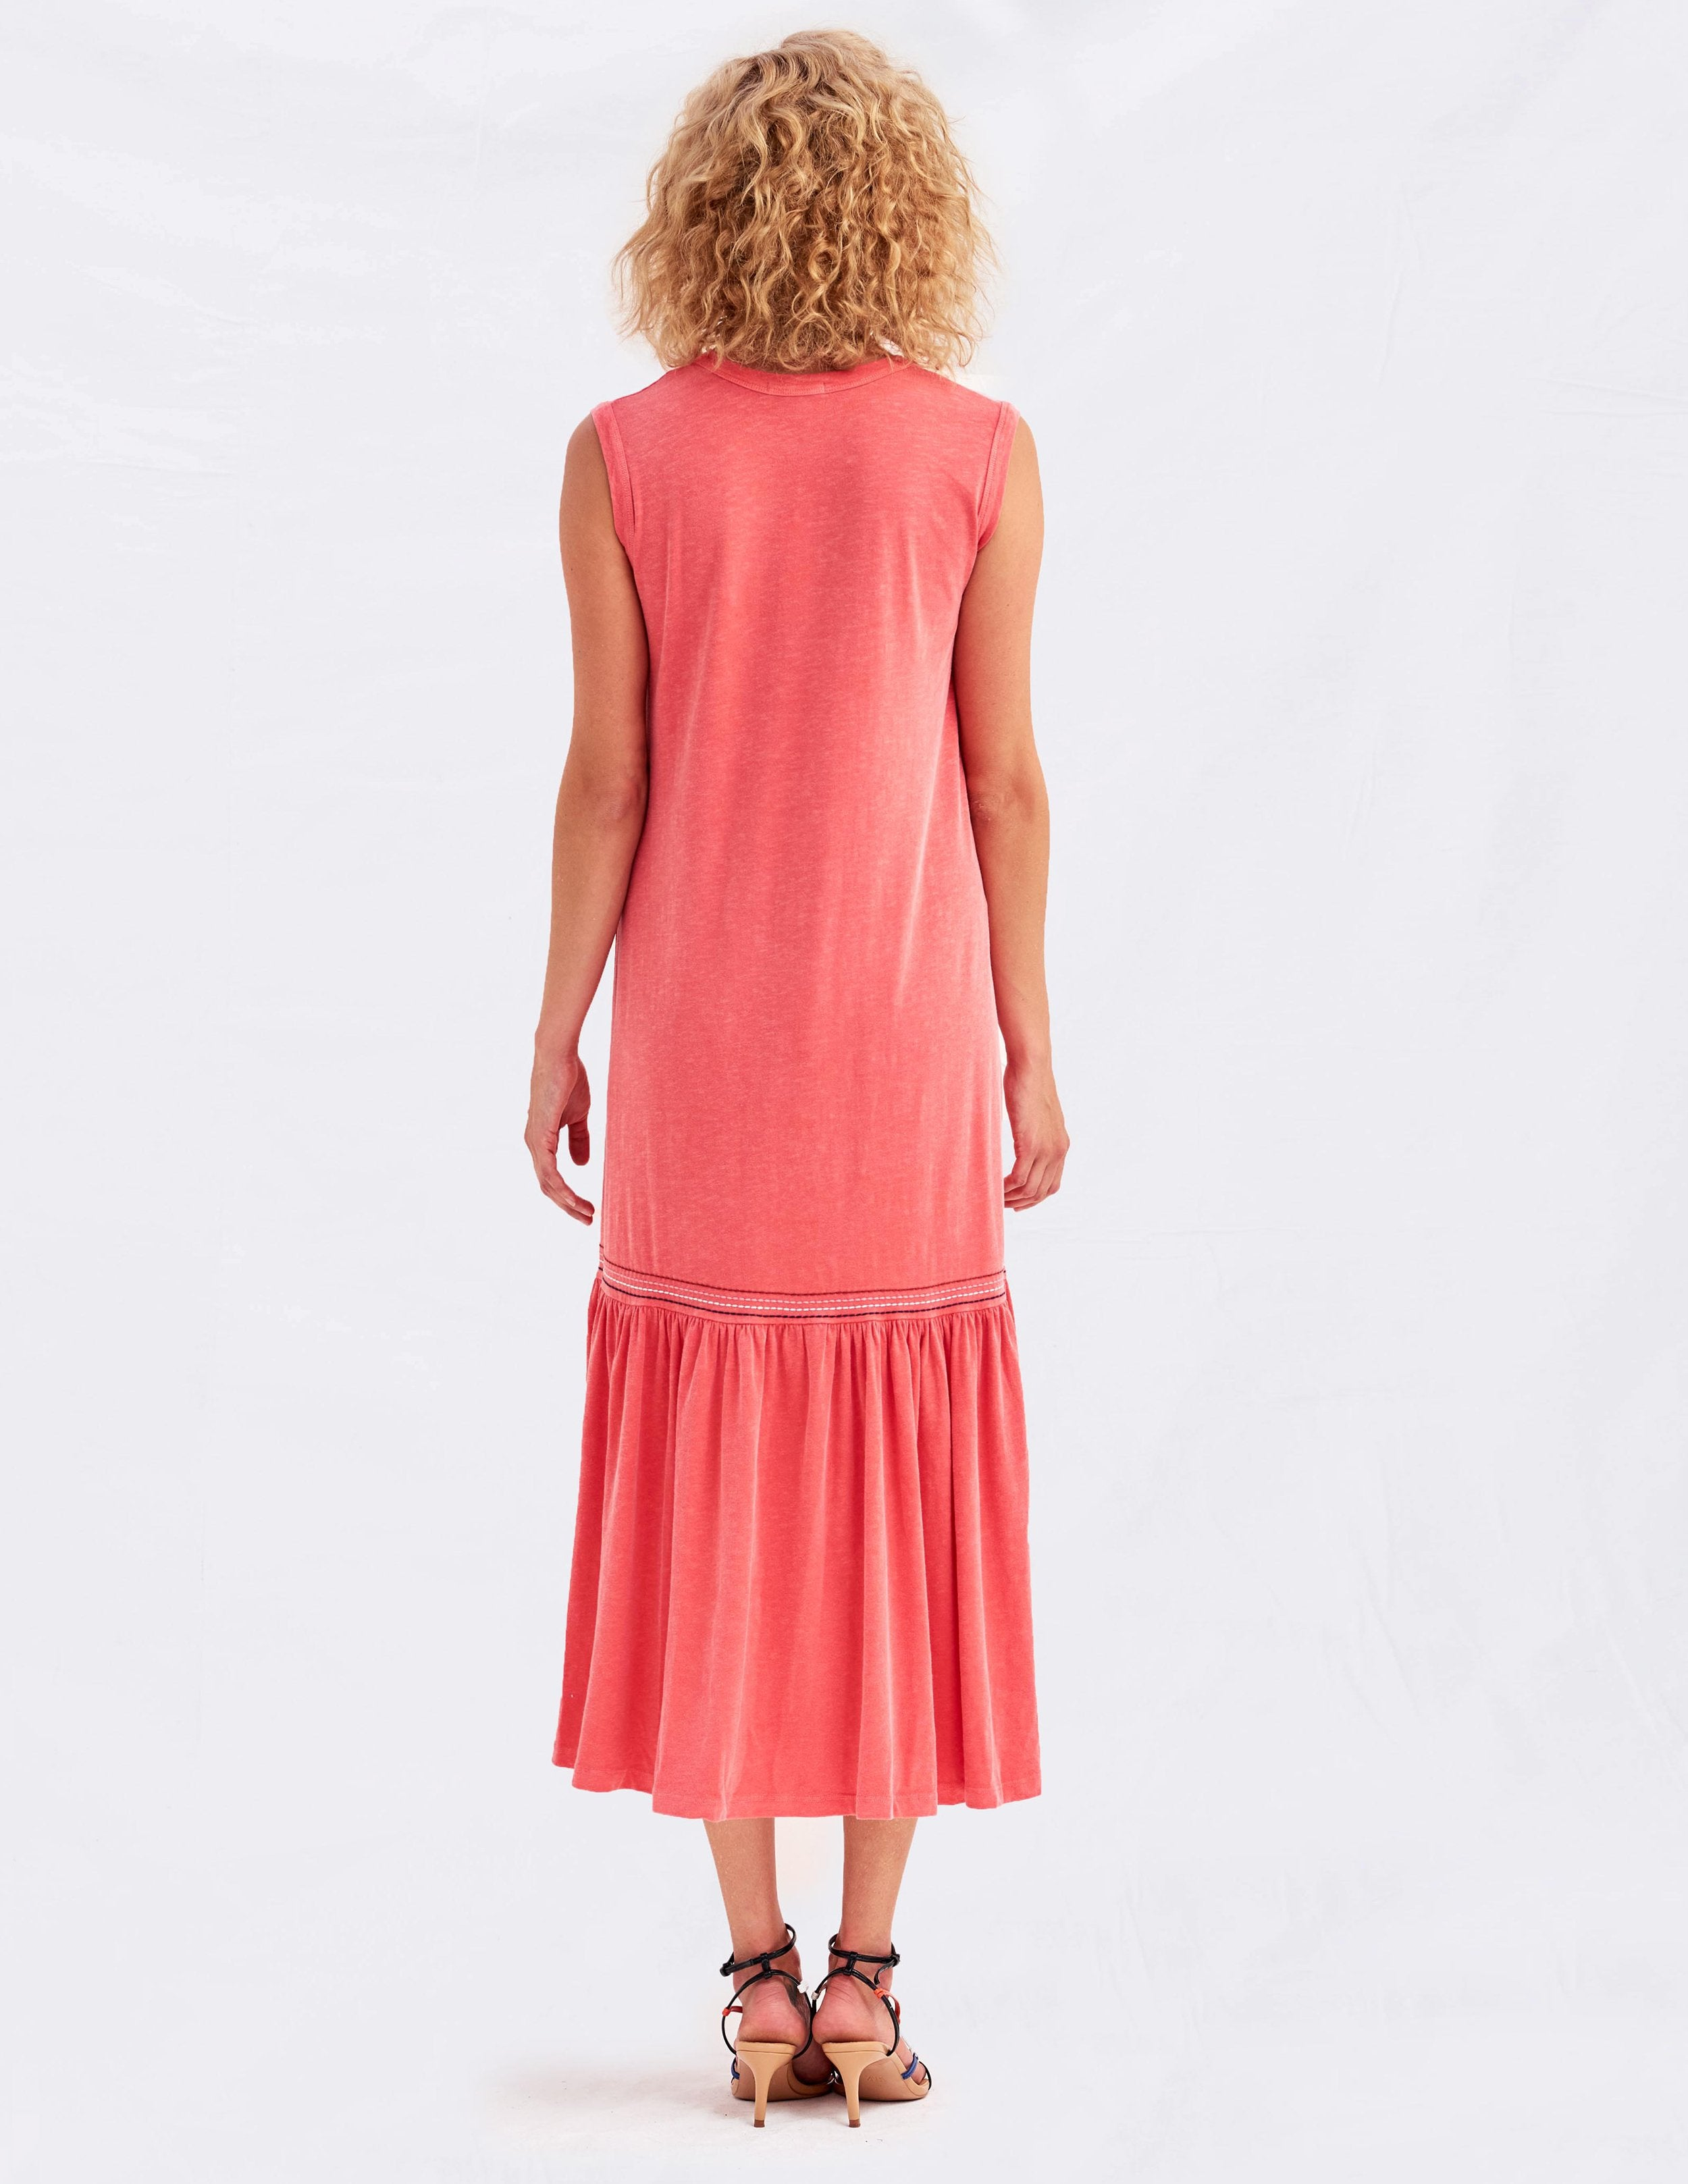 Embroidered Tank Dress - Pigment Hibiscus